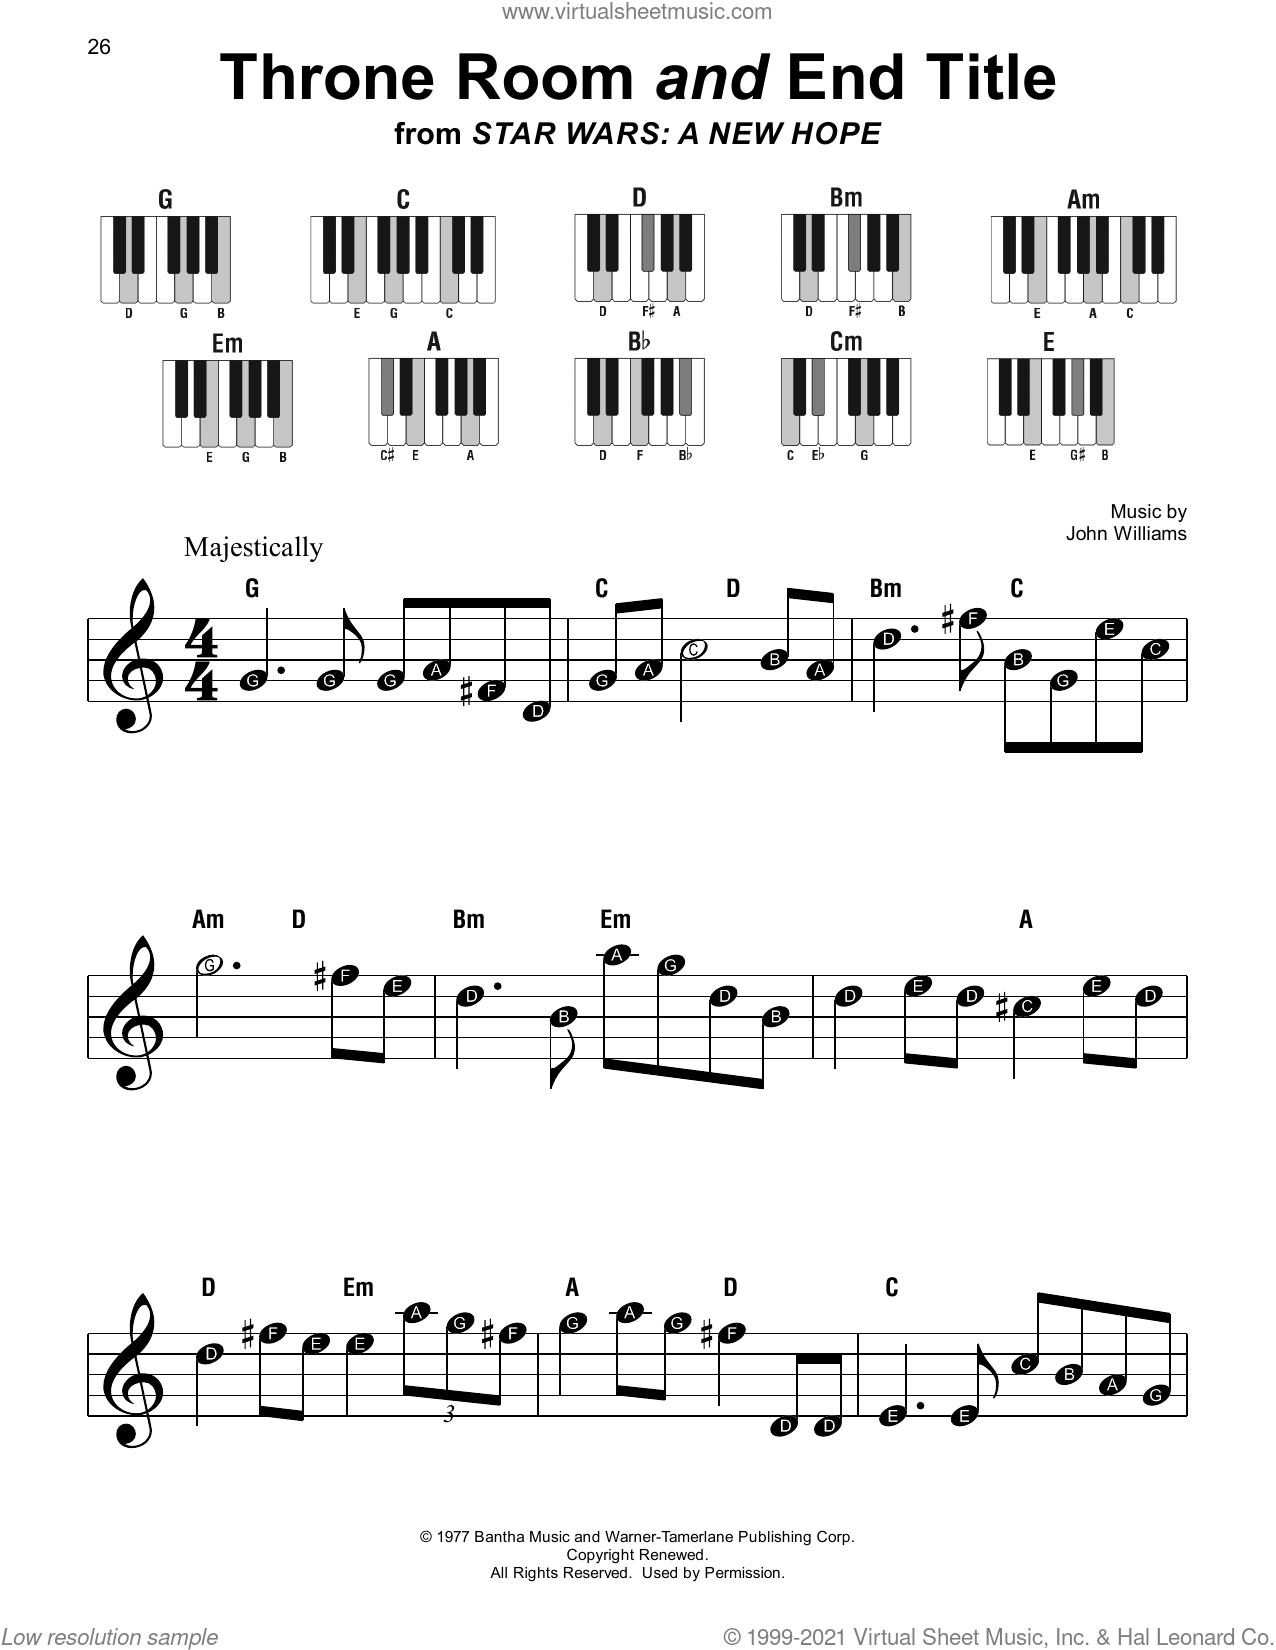 Throne Room and End Title (from Star Wars: A New Hope) sheet music for piano solo by John Williams, beginner skill level